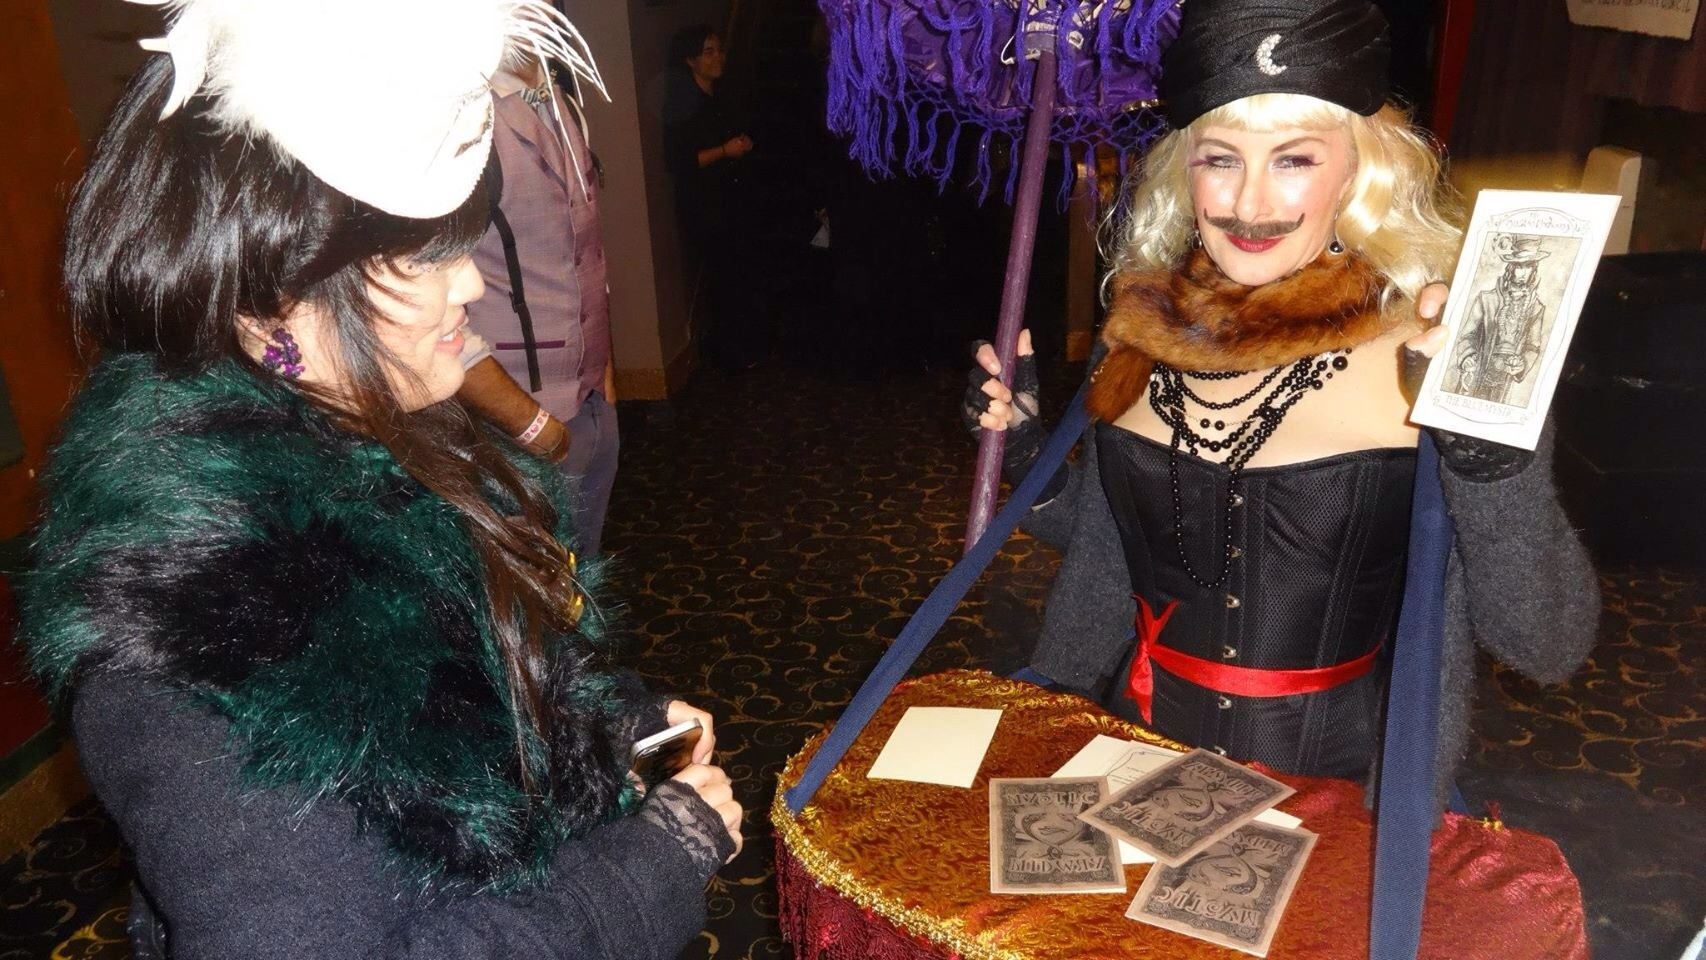 The MM cards and Lady Fortuna told miss-fortunes to guests waiting for their Test